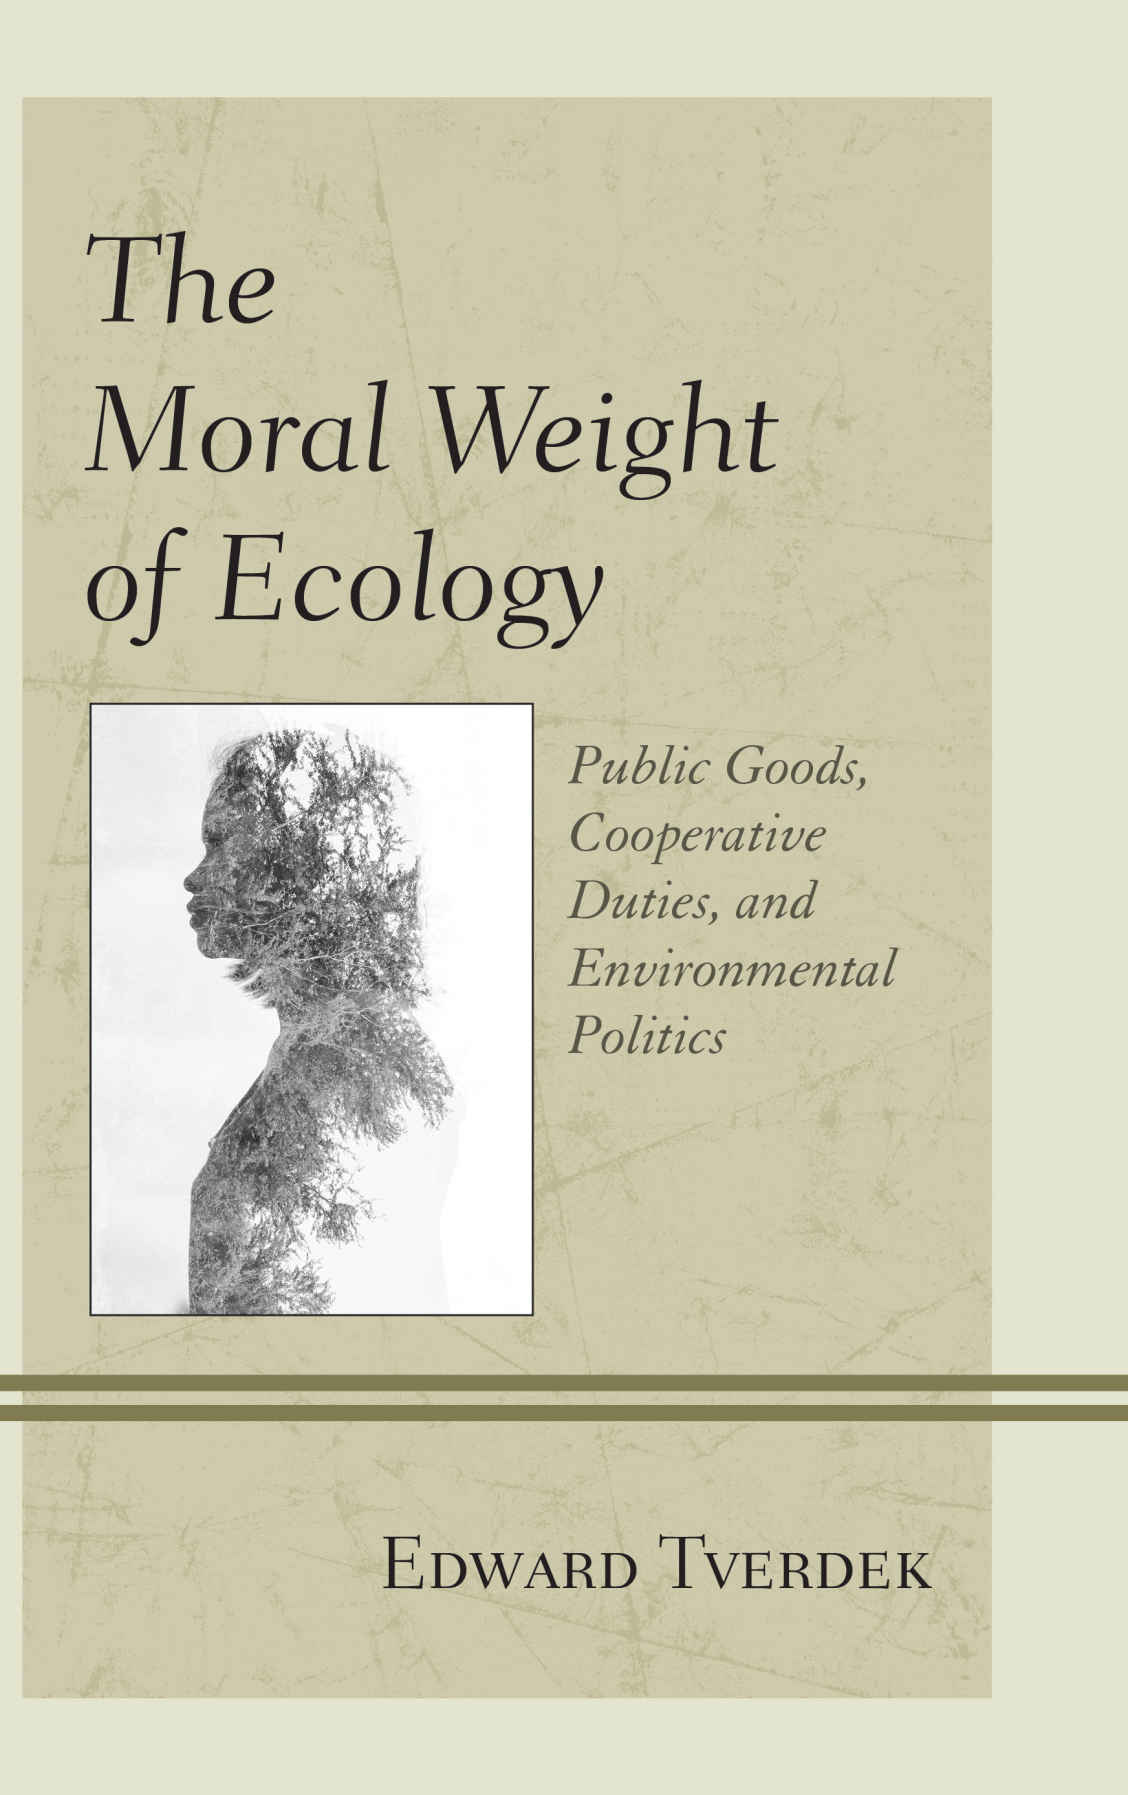 The Moral Weight of Ecology